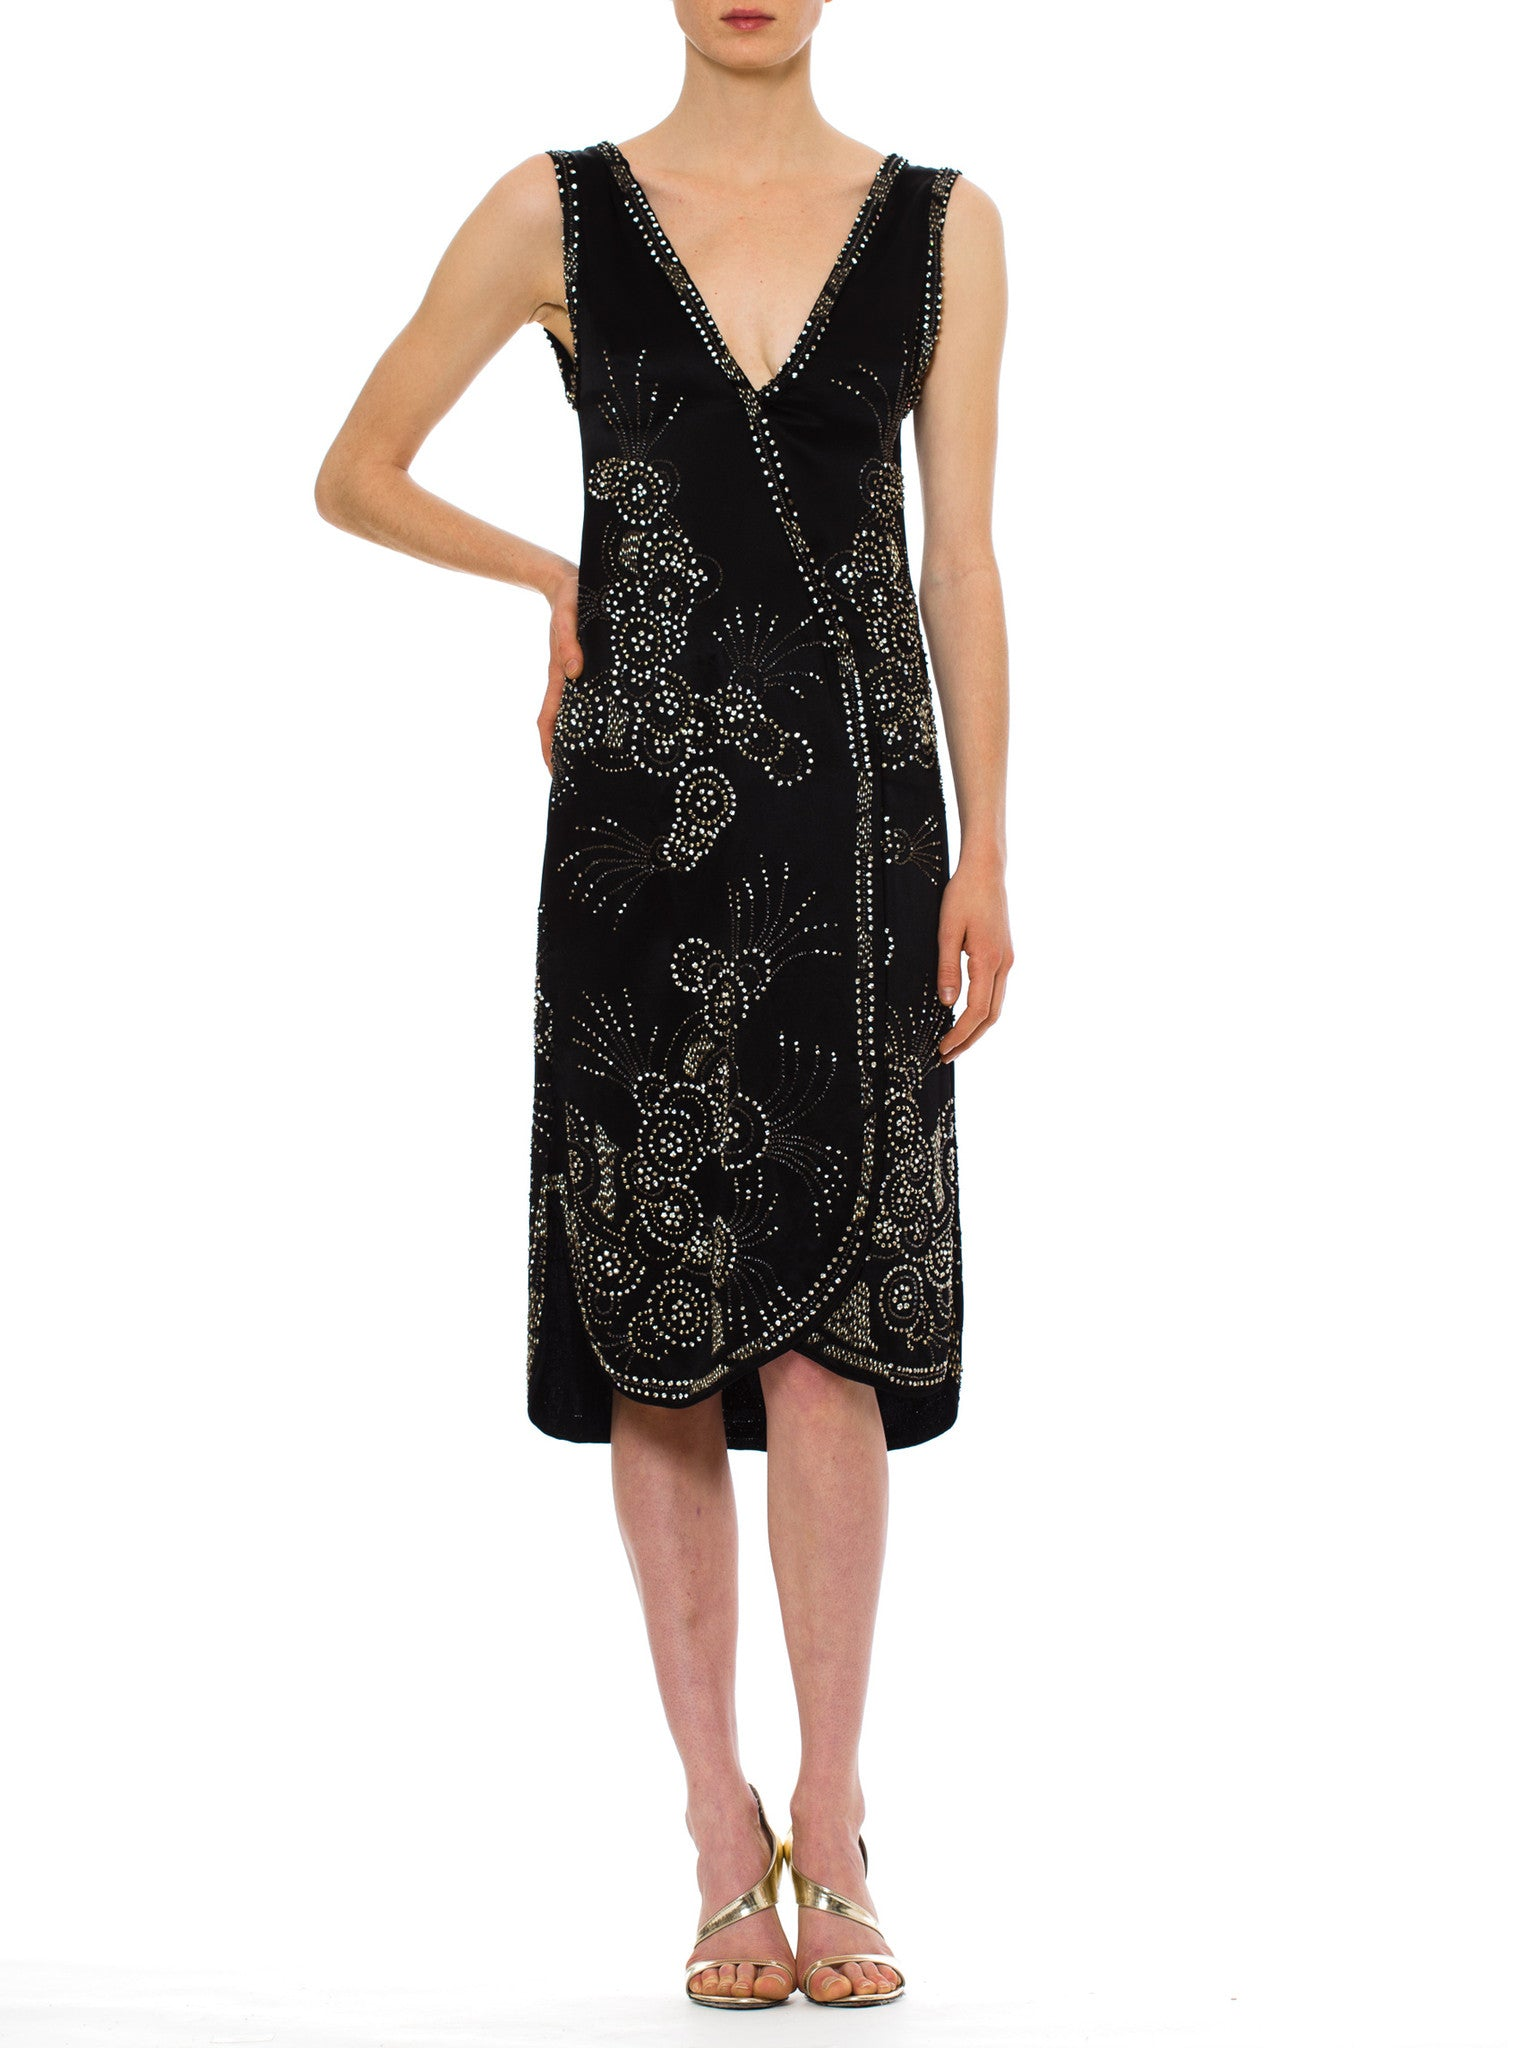 1920S Black Silk Satin Art Deco Crystal Beaded Cocktail Dress Can Be Worn Open As Well